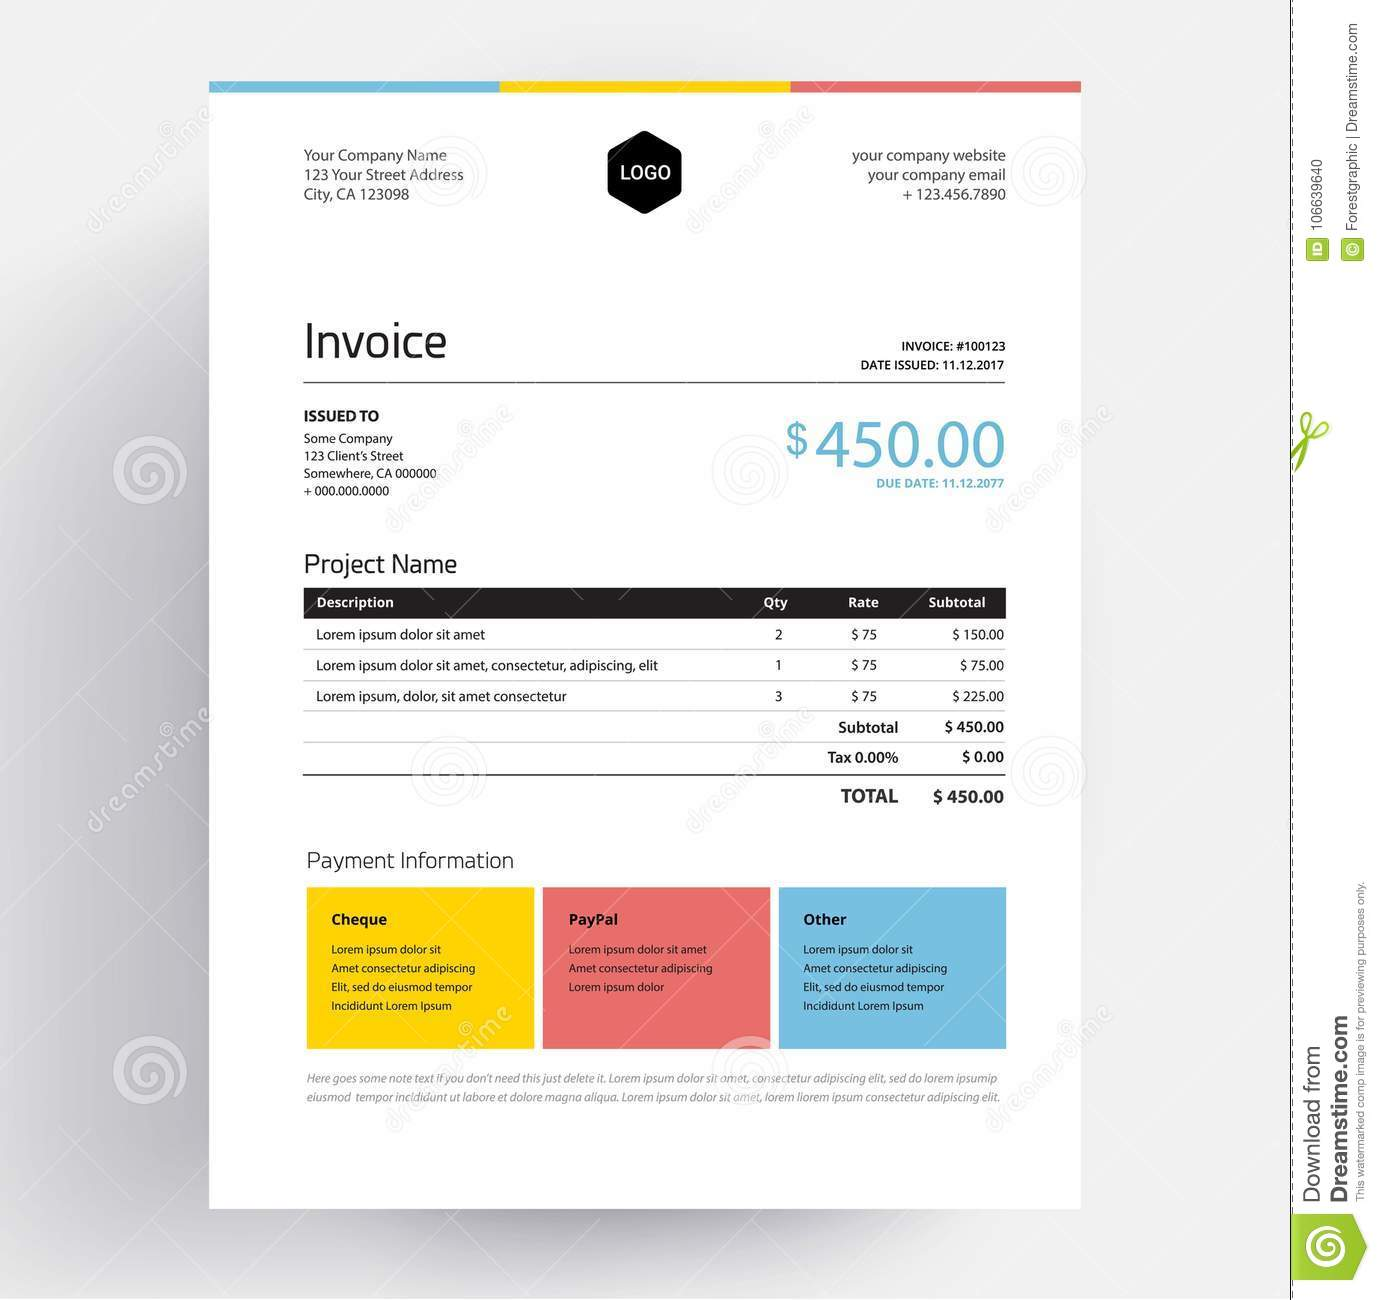 Invoice template design in minimal style creative colorful busness invoice template design in minimal style creative colorful business template in three colors yellow blue red thecheapjerseys Image collections